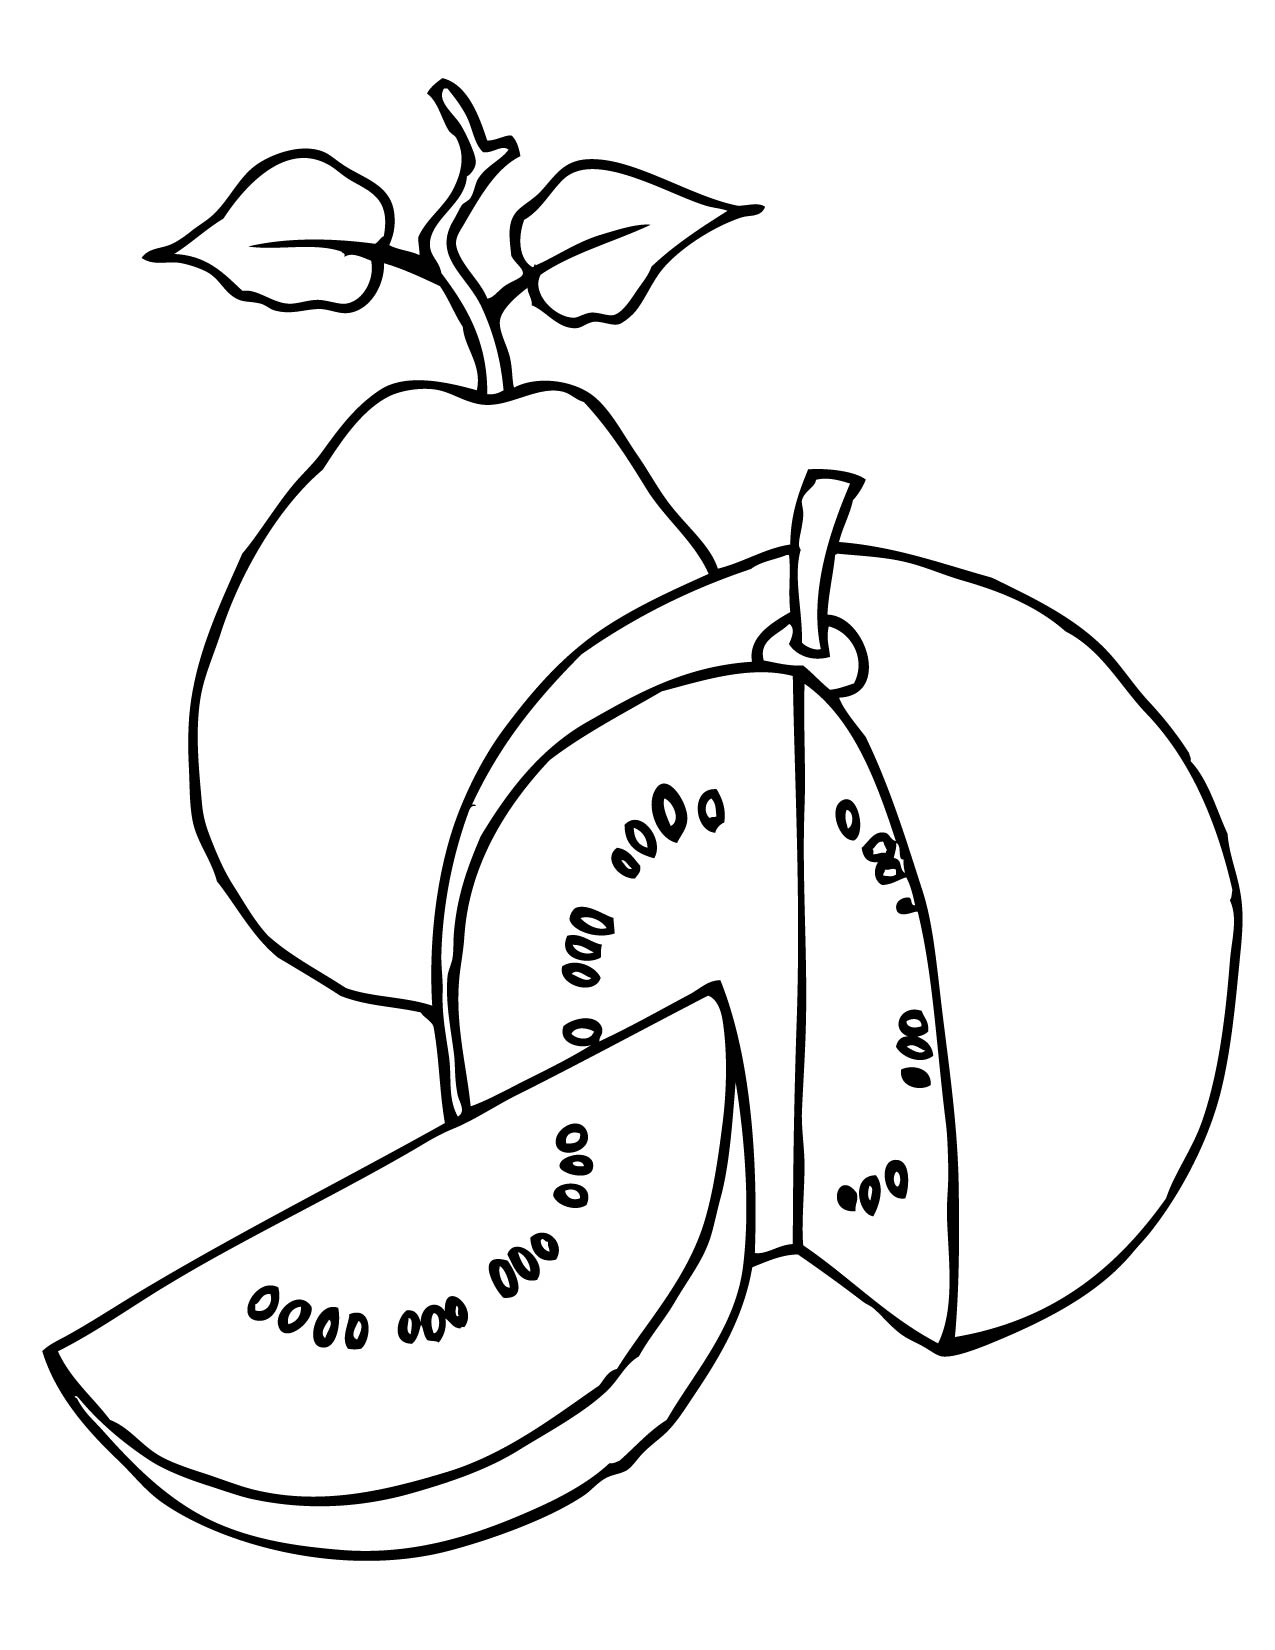 guava coloring pages guava fruits coloring pages for kids printable free coloring pages guava